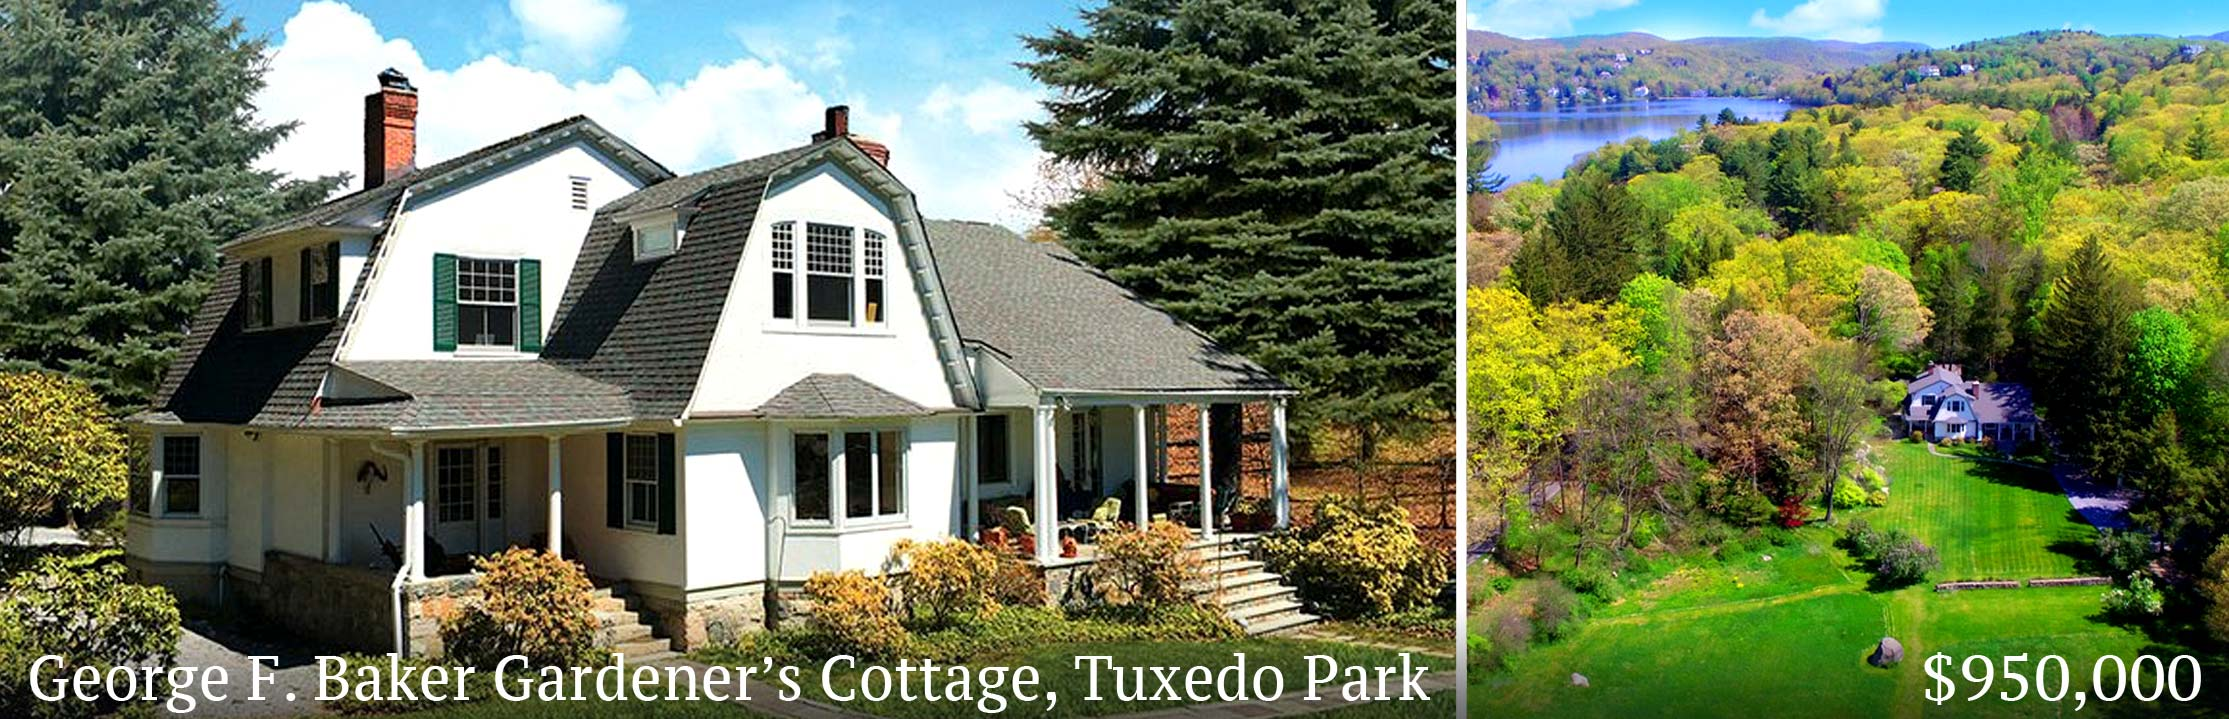 featured-property